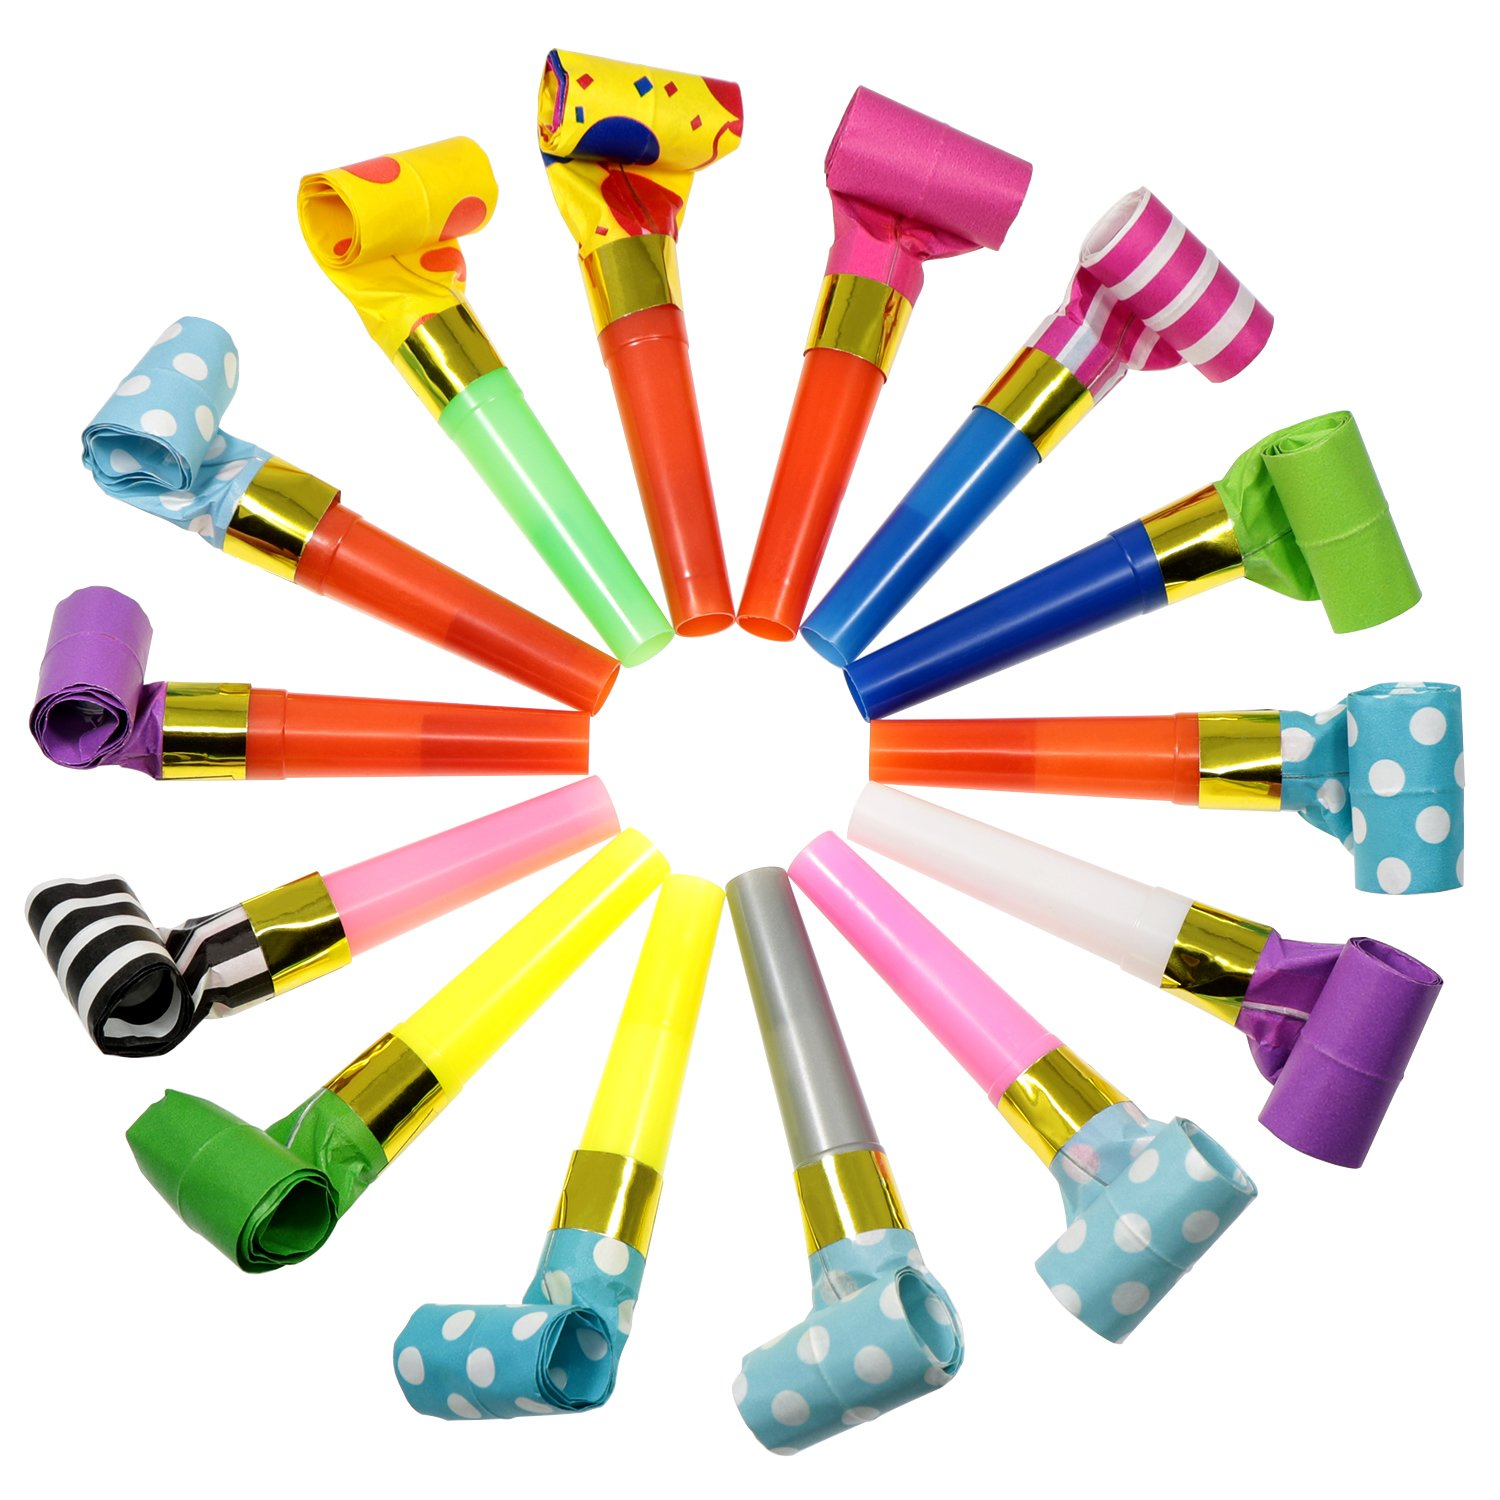 Waykino Party Horns Blowouts Bulk Paper Blowouts Party Favors Toy for Kids Assorted Color, 50 Pieces